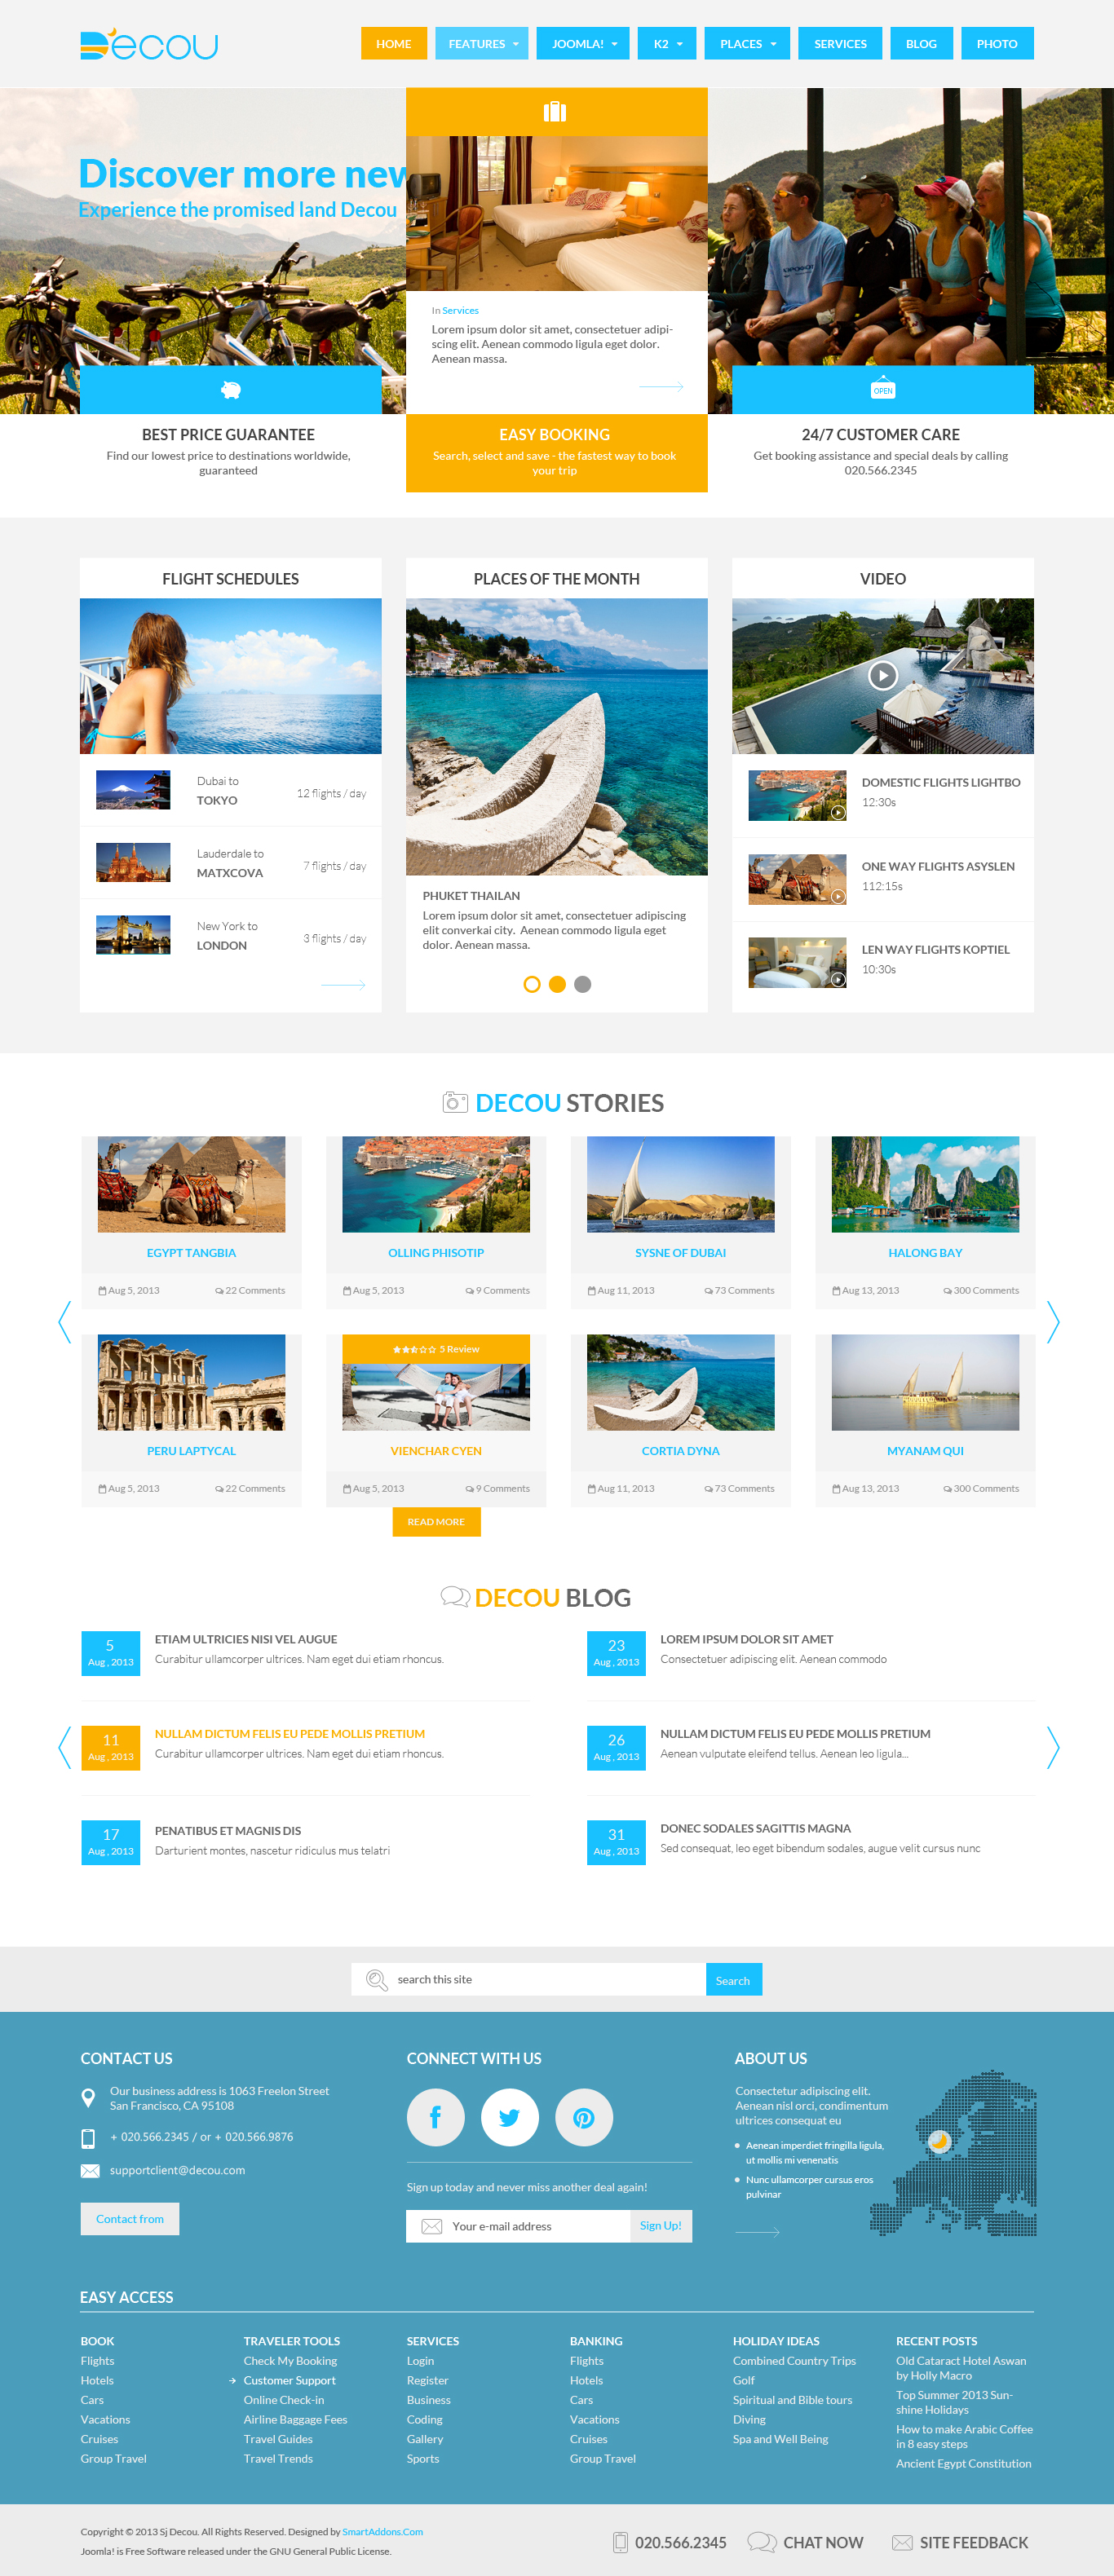 PREVIEW] SJ Decou - Travel Joomla Template for K2 Component